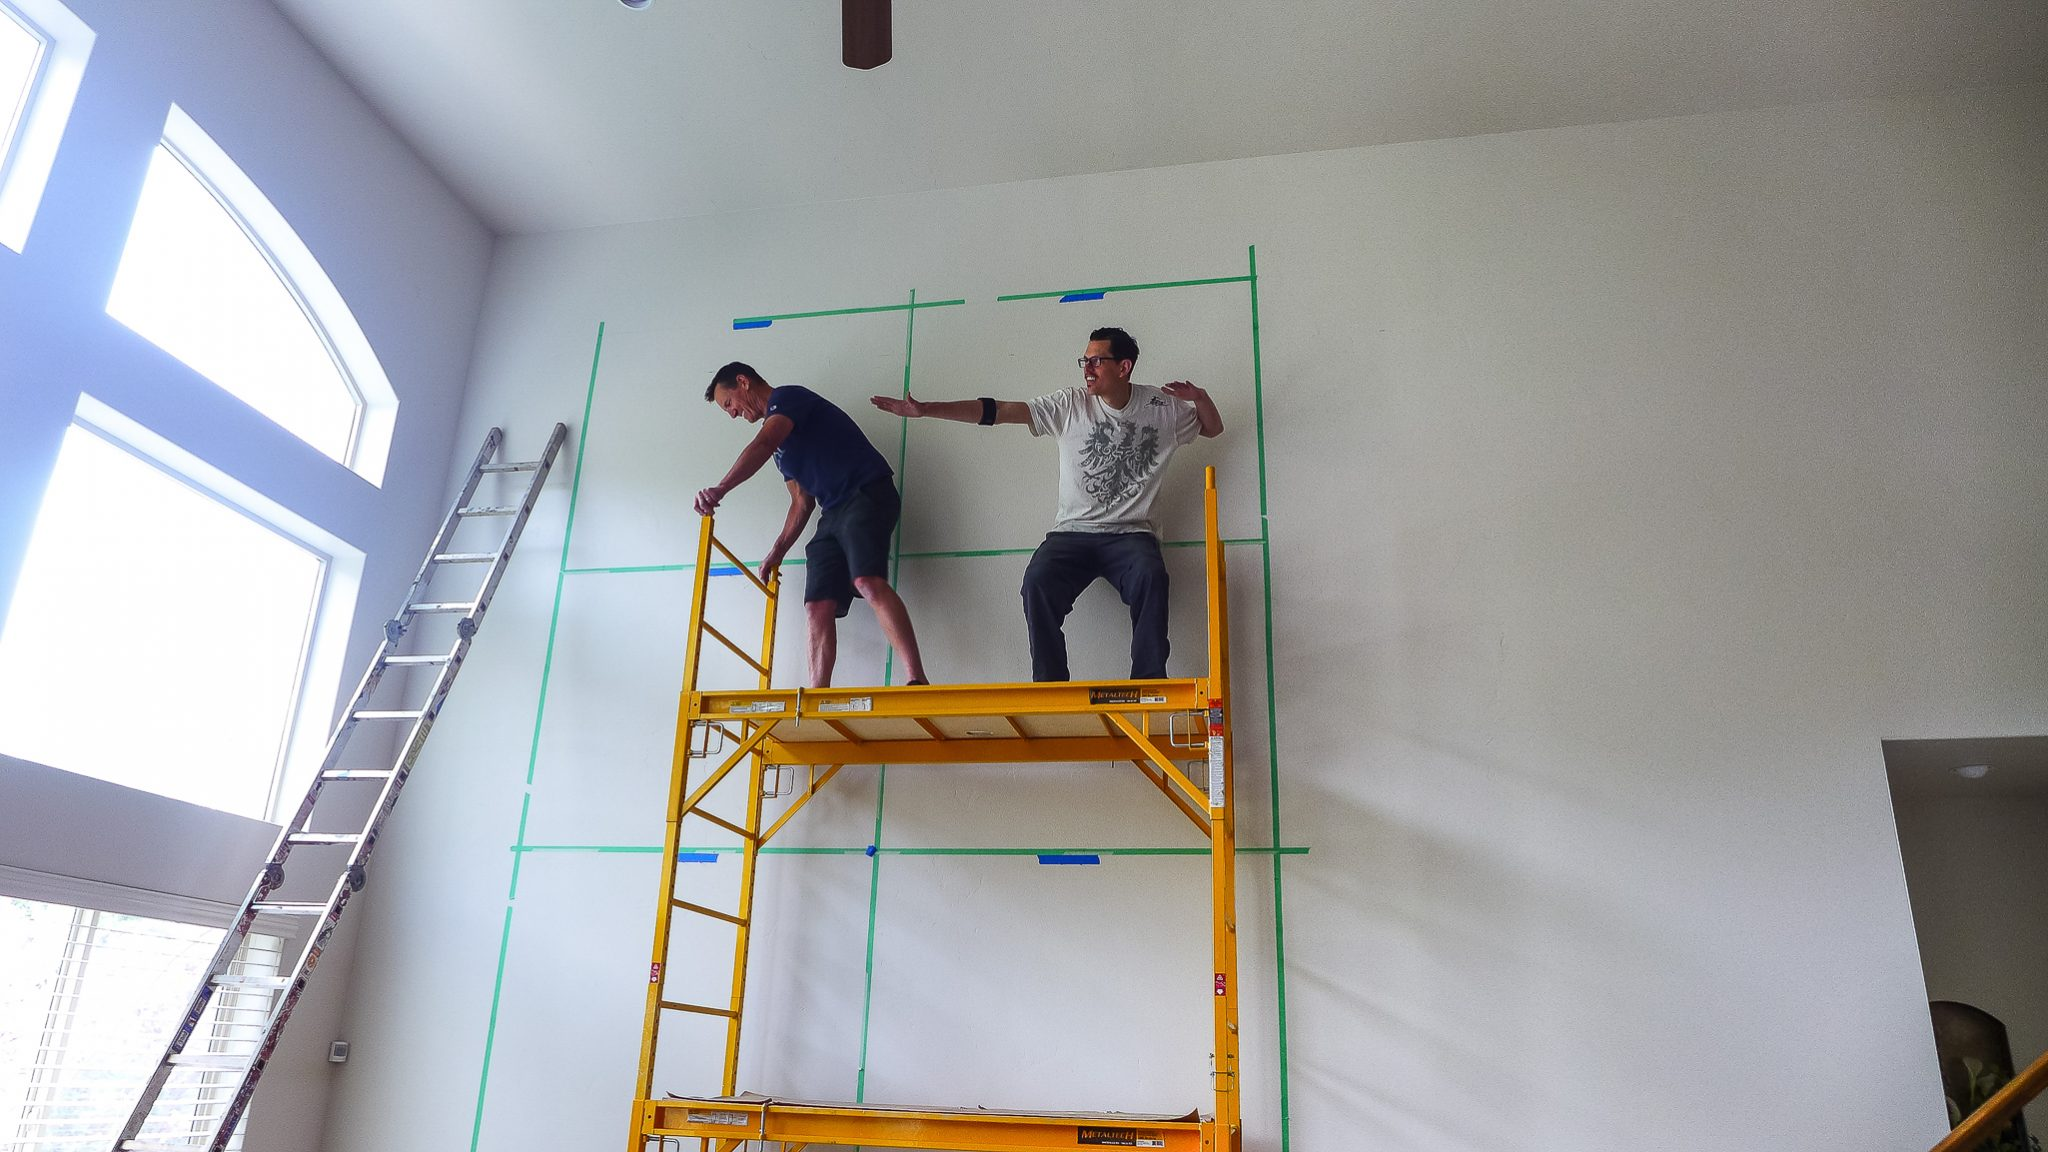 mike bowen and don bowen surfing scaffolding